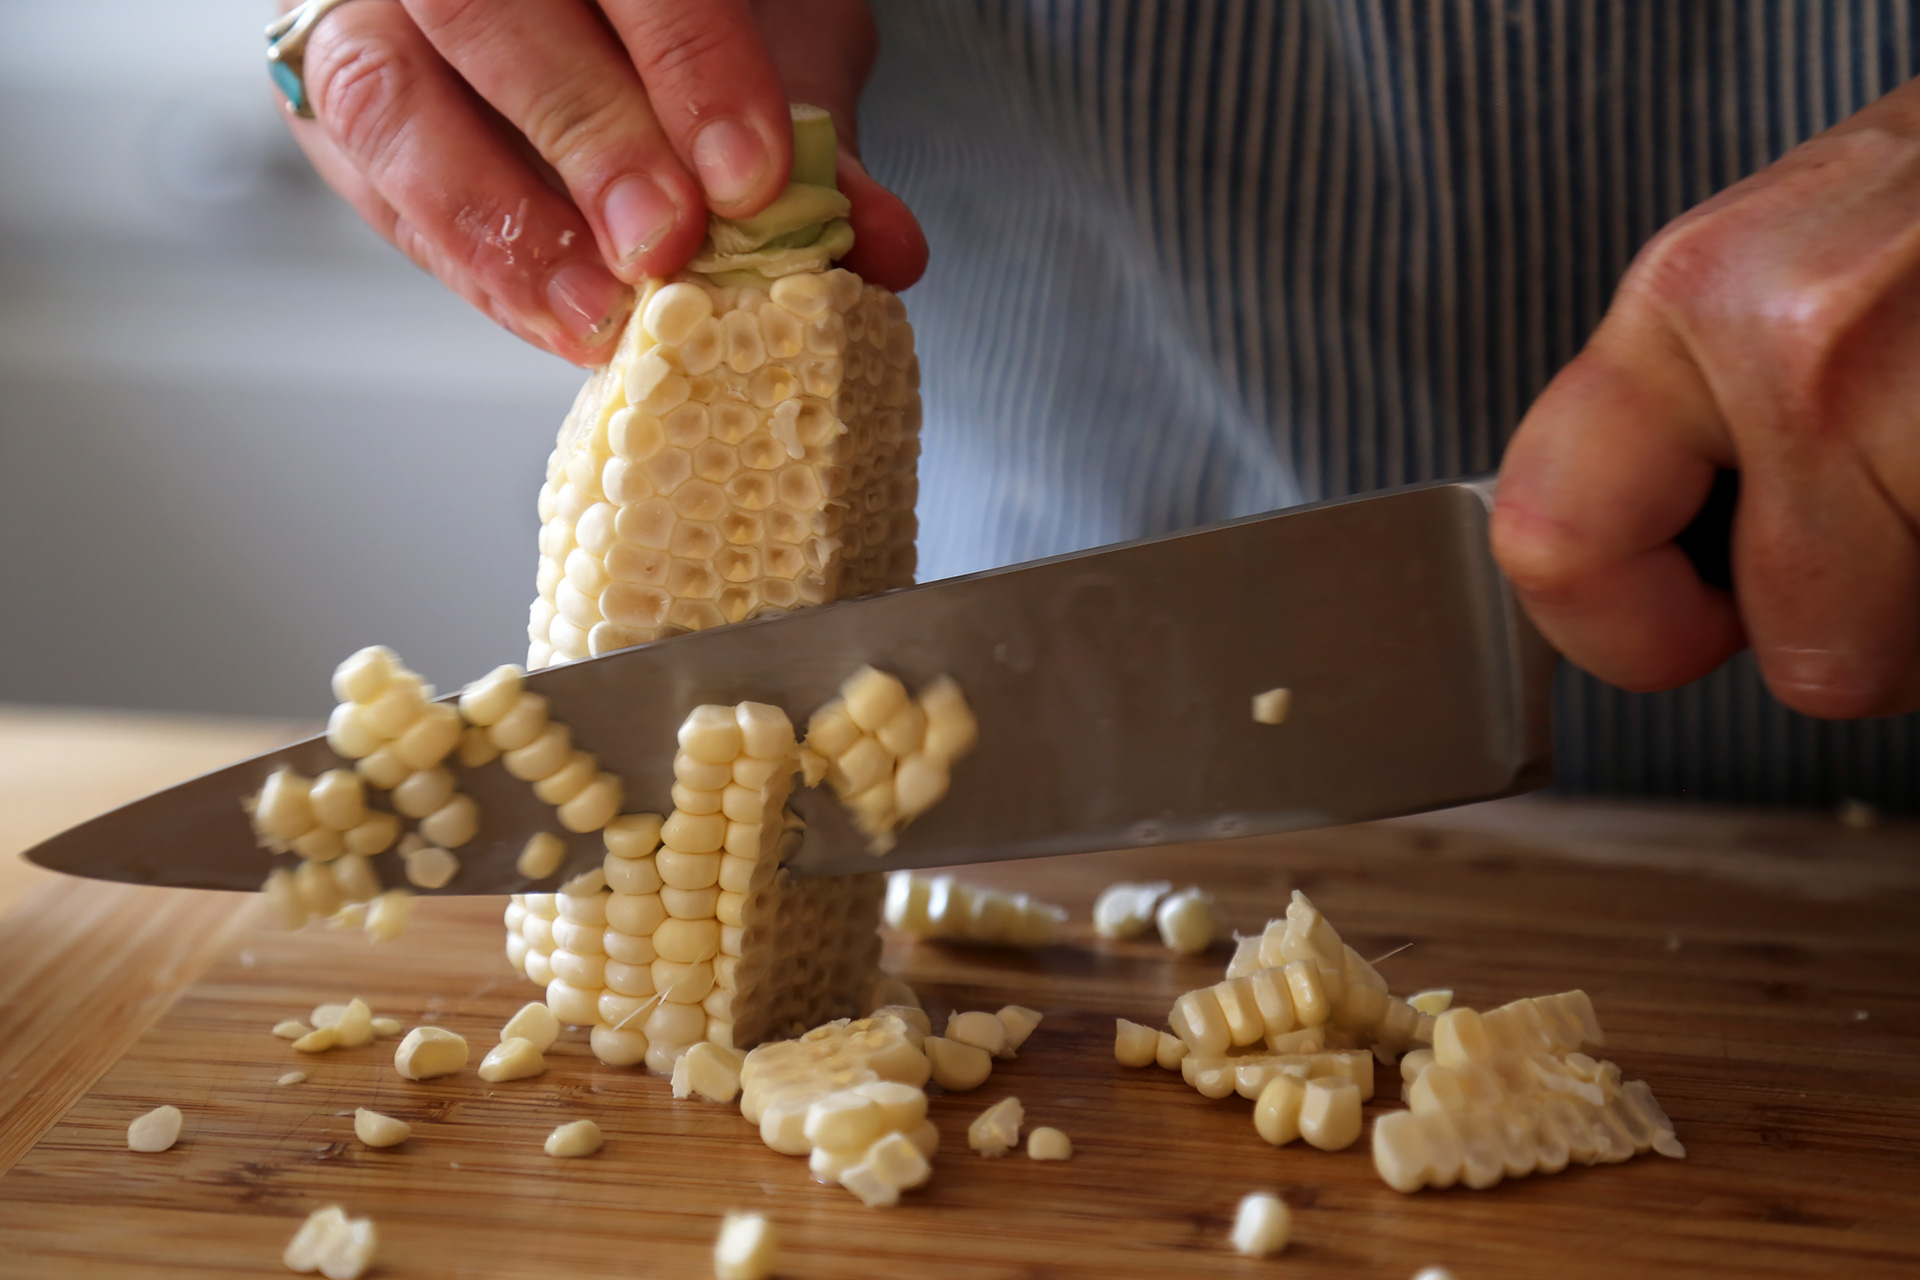 Stand the cob on the flat end, and, using a sharp knife, cut down the side of the cob to remove the kernels.